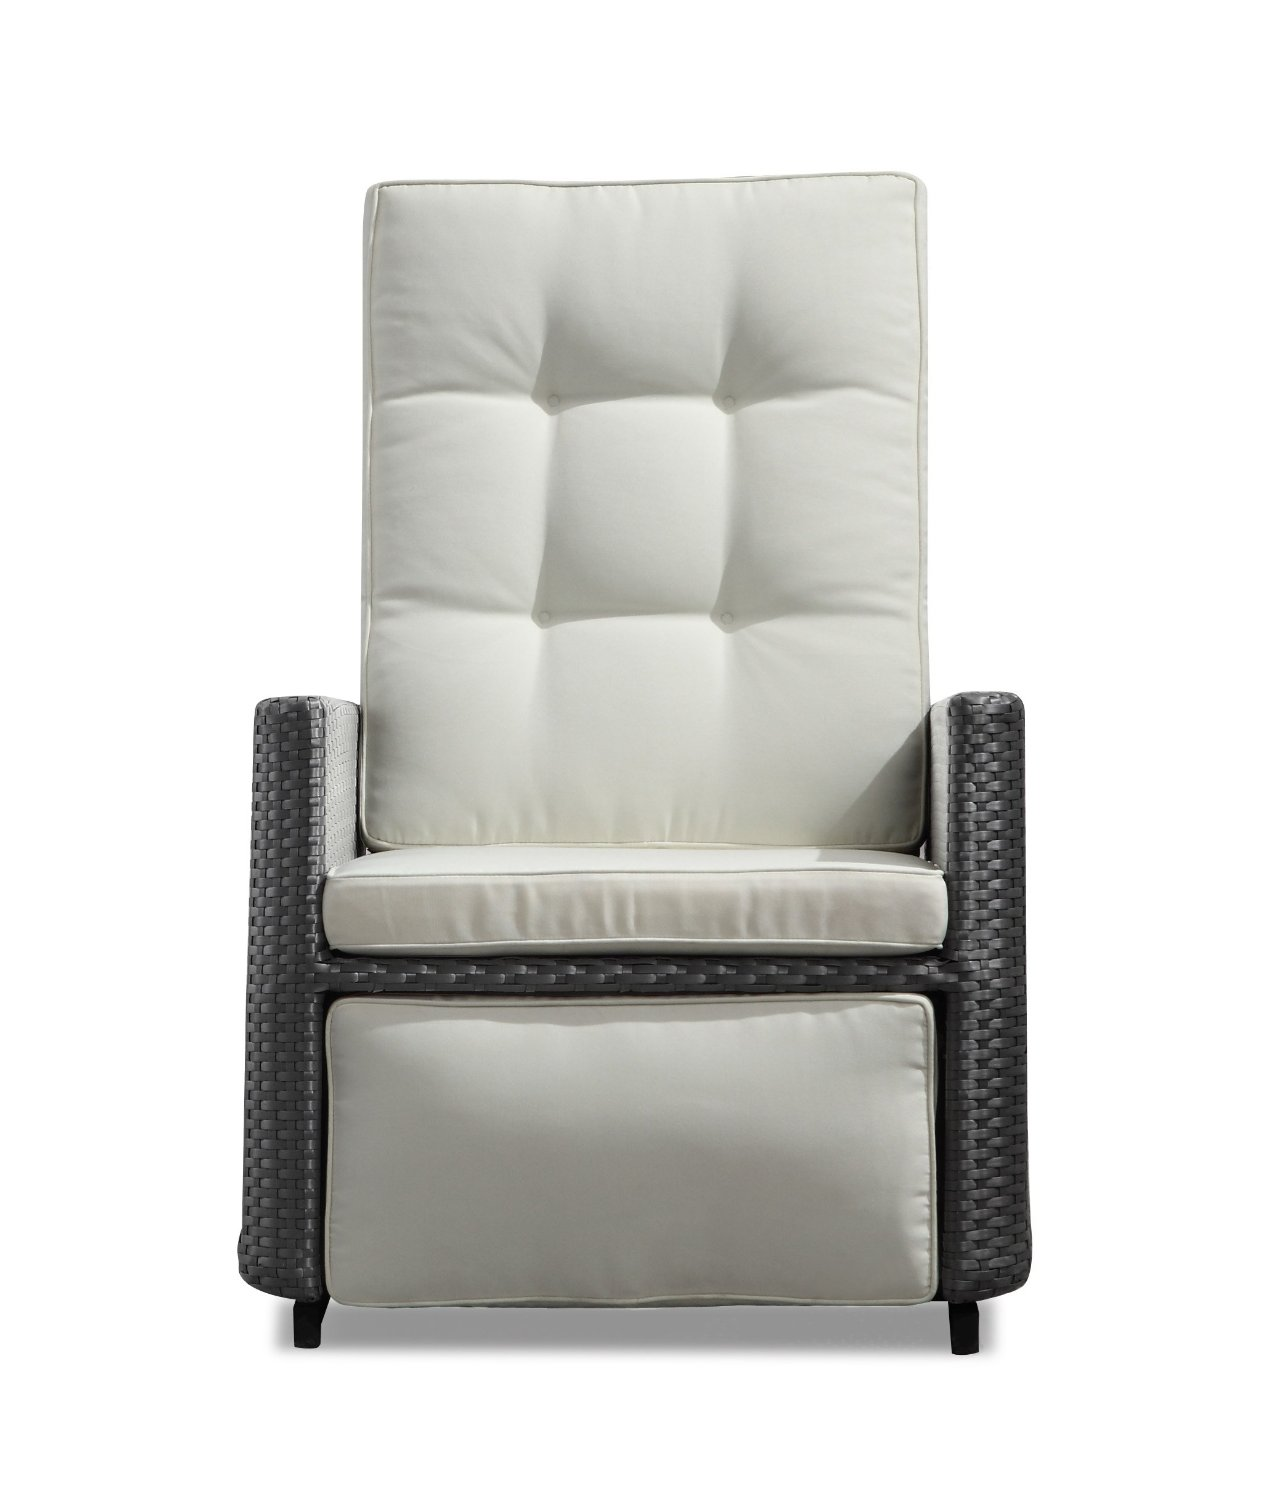 Image of: Modern Rocking Recliner Chair